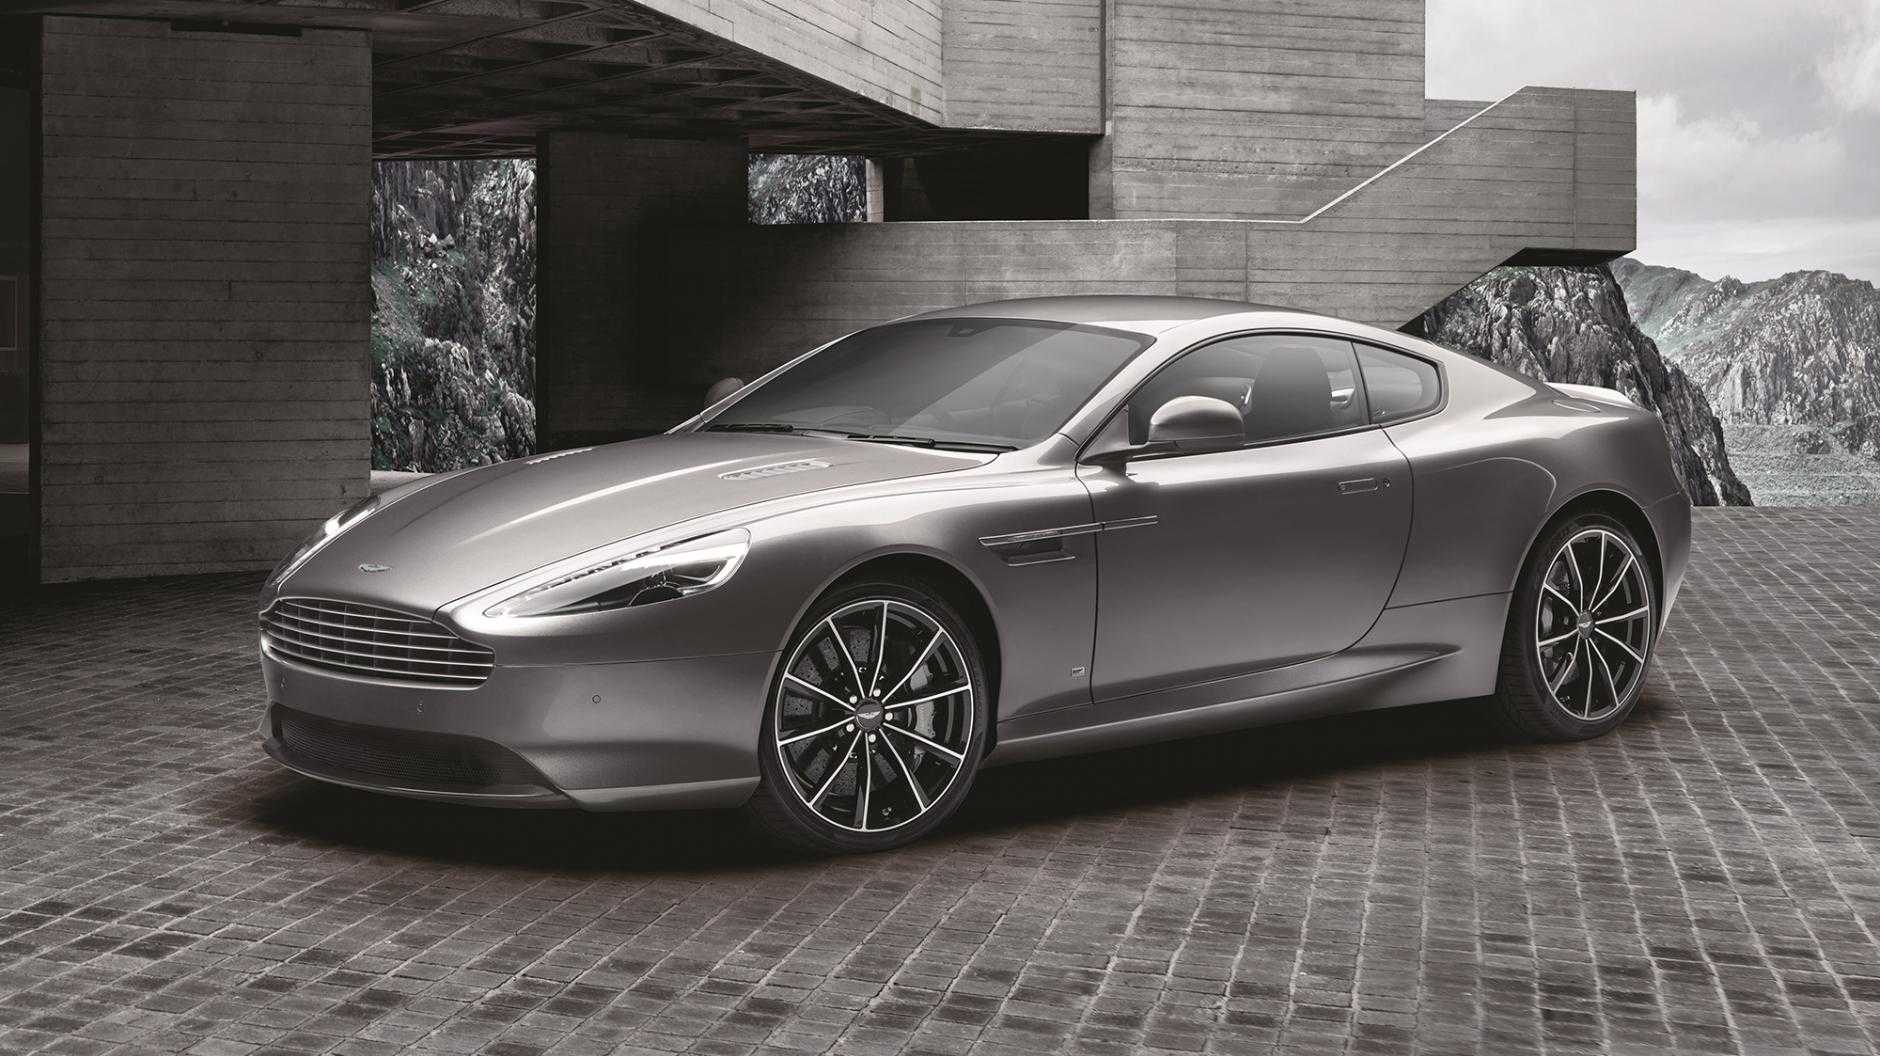 Aston Martin DB9 is going to be DB11, Brand Boss Confirms